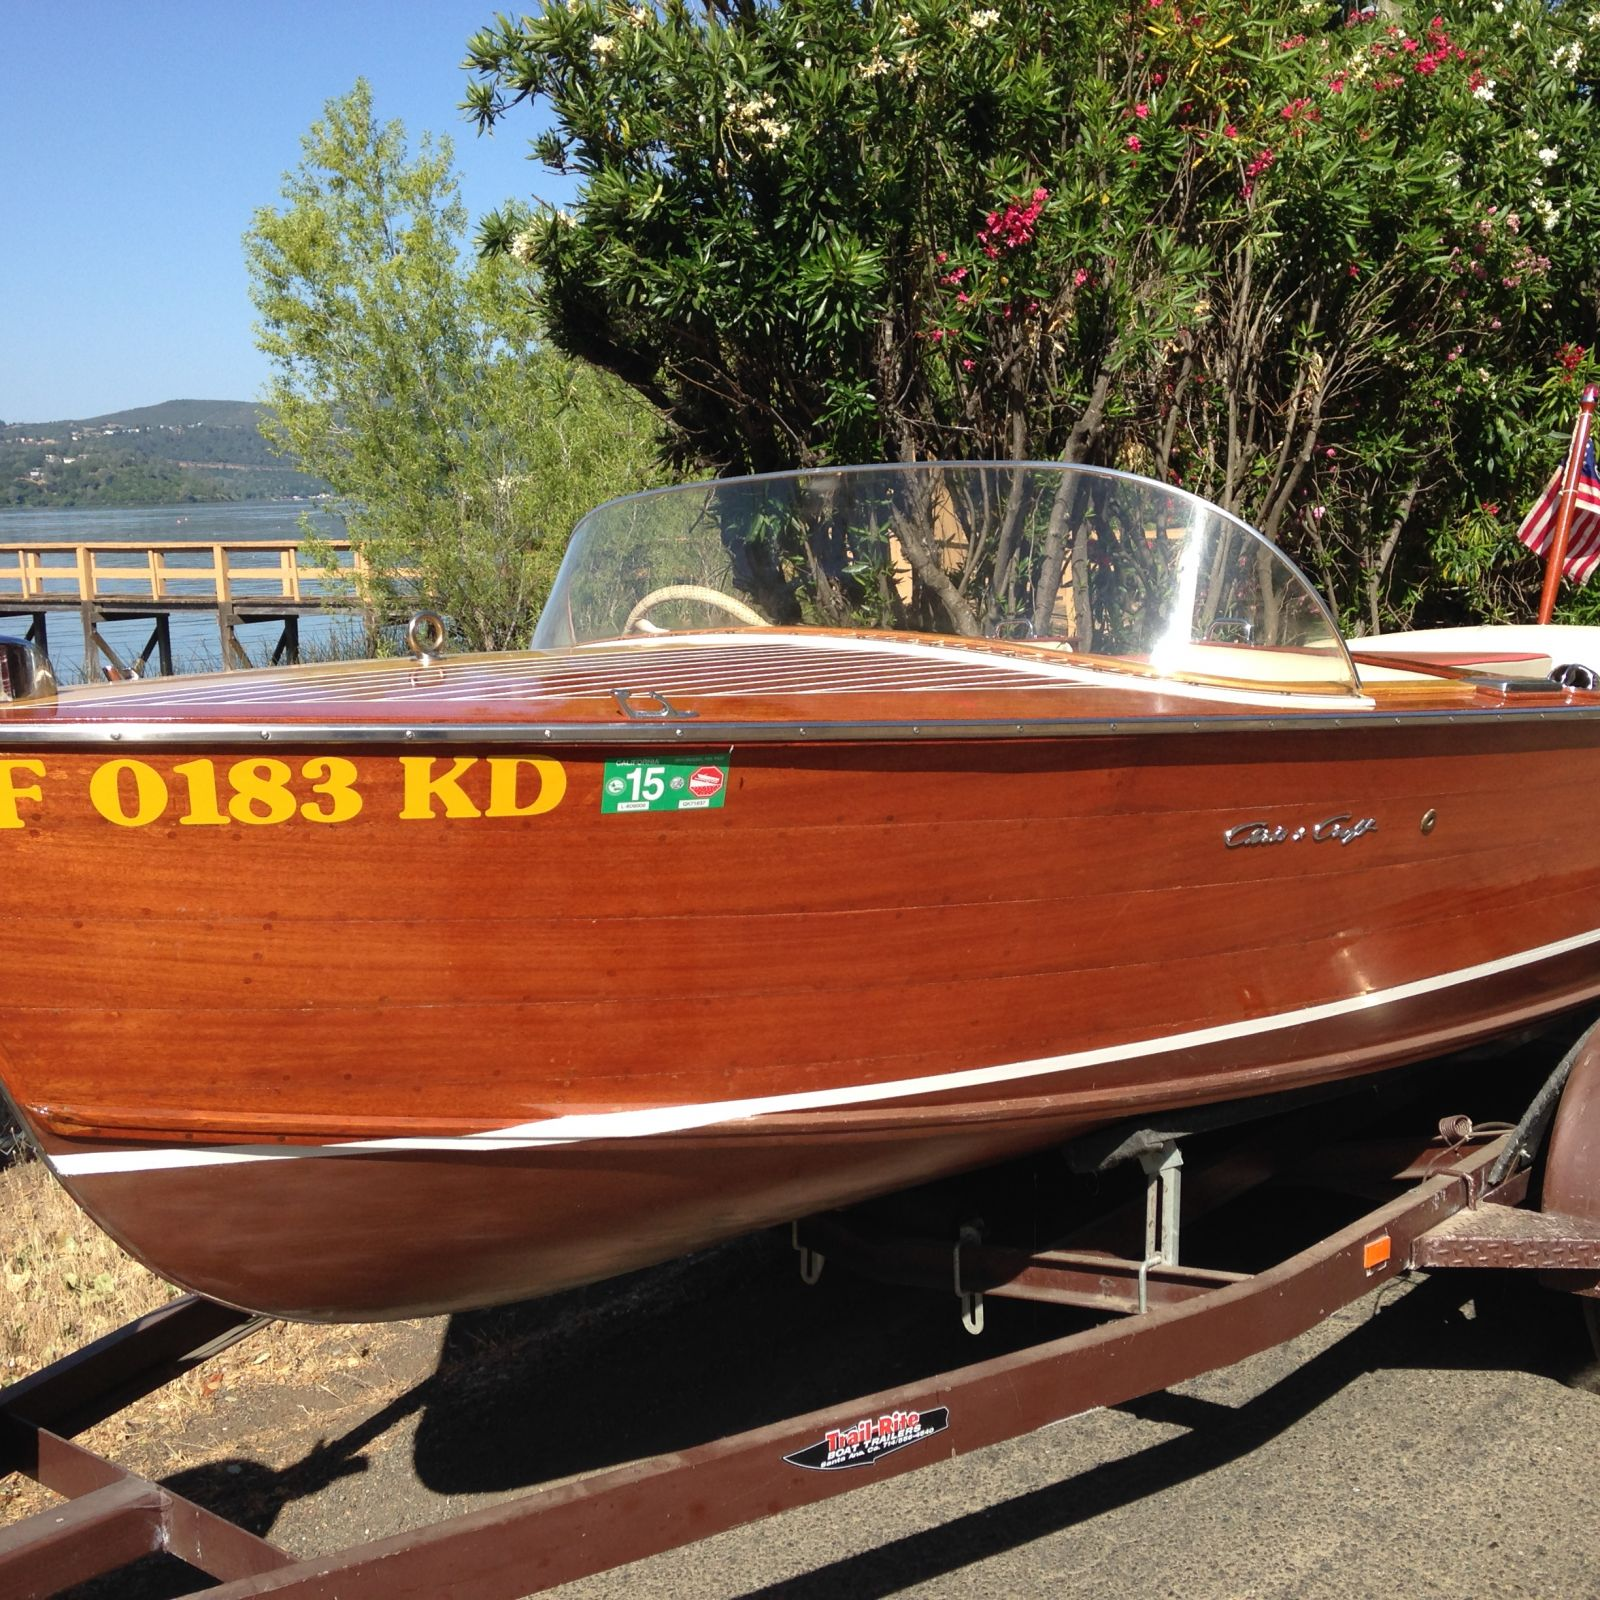 Chris Craft - LadyBen Classic Wooden Boats for Sale